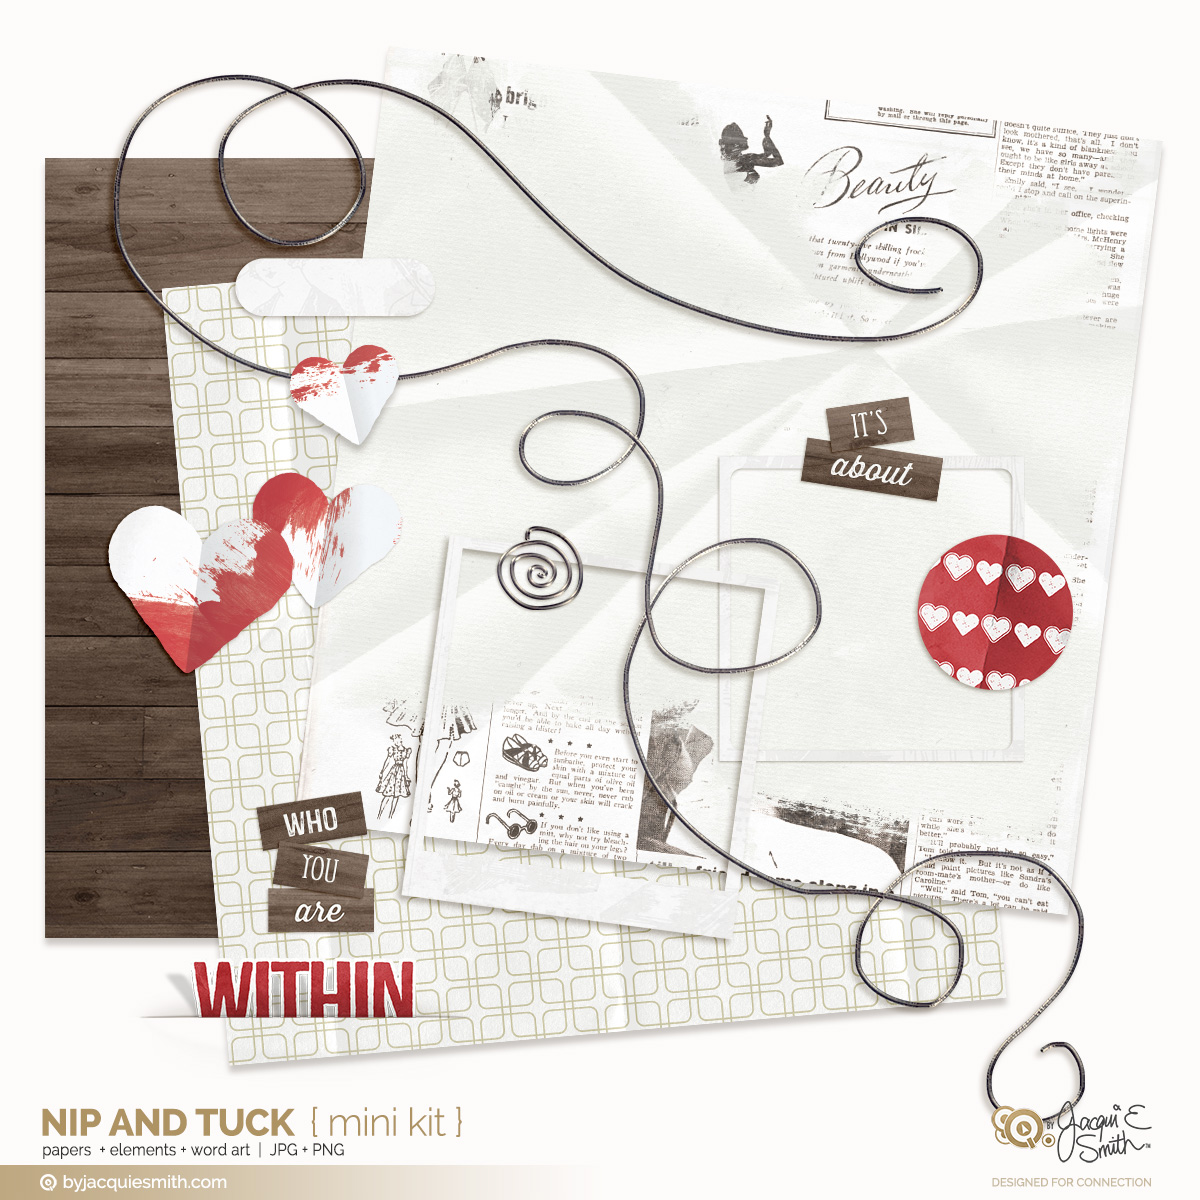 Nip and Tuck digital mini kit at byjacquiesmith.com